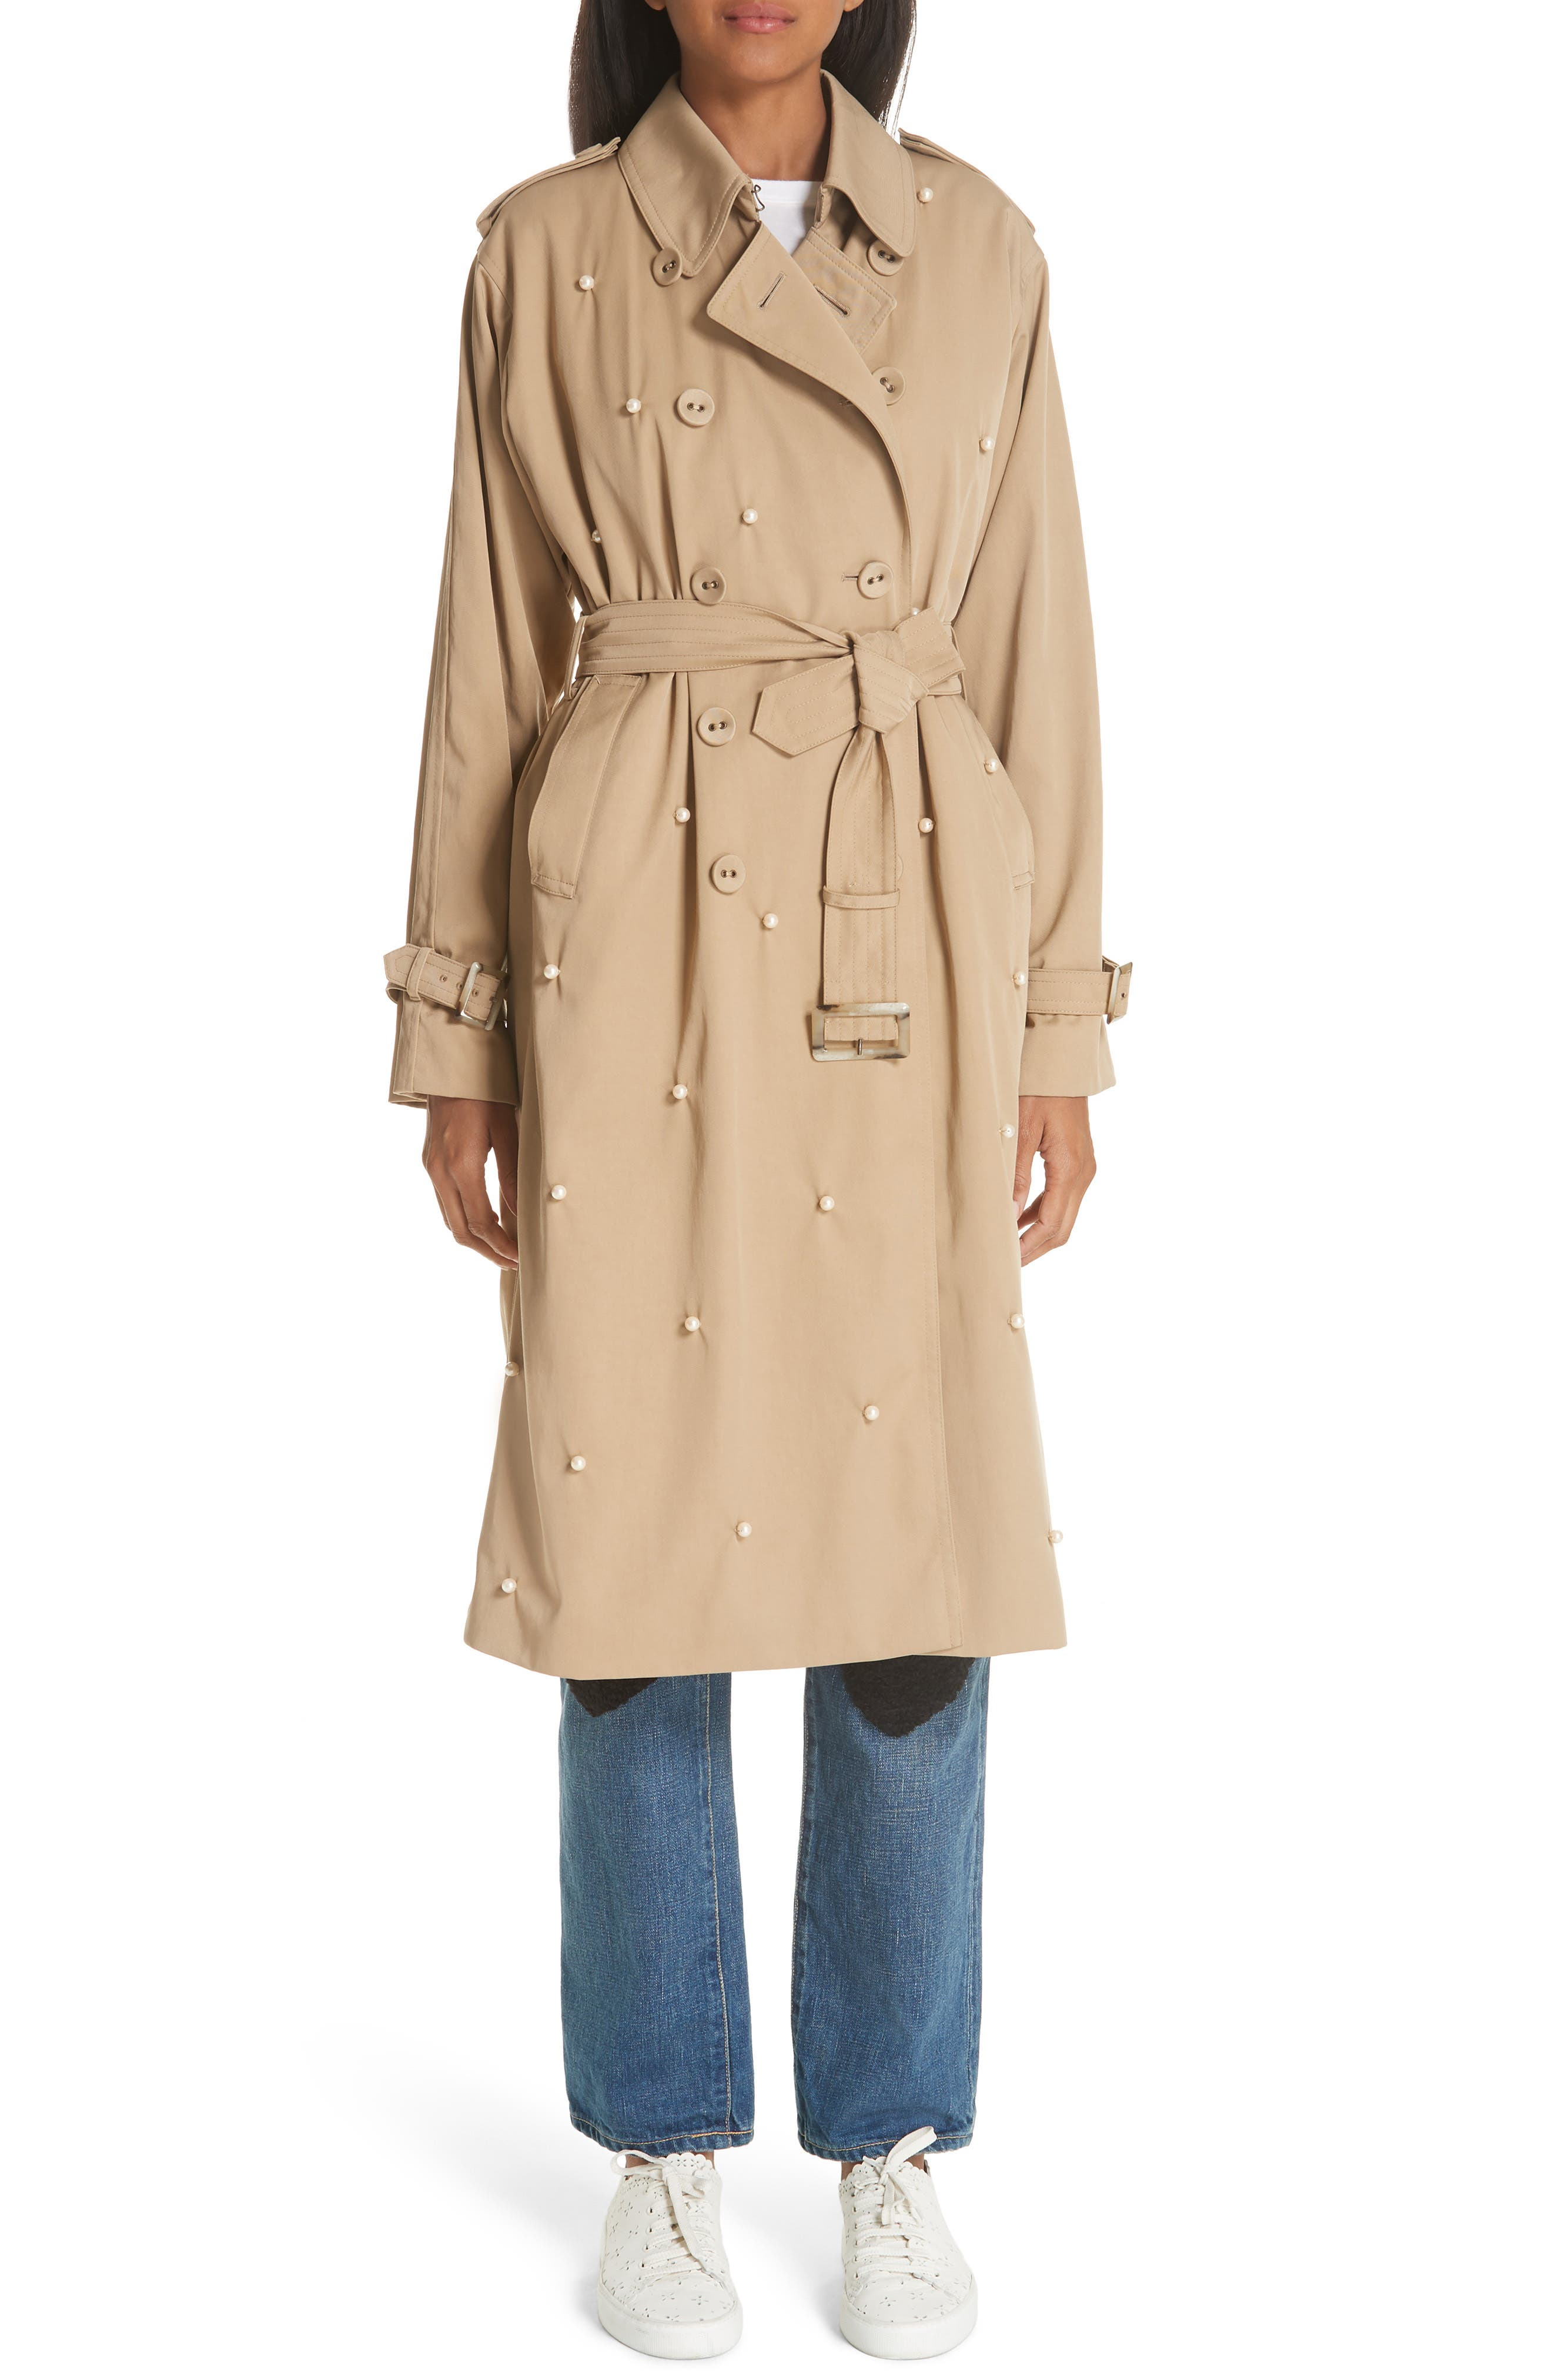 Imitation Pearl Embellished Trench Coat,                             Alternate thumbnail 8, color,                             BEIGE BEIG